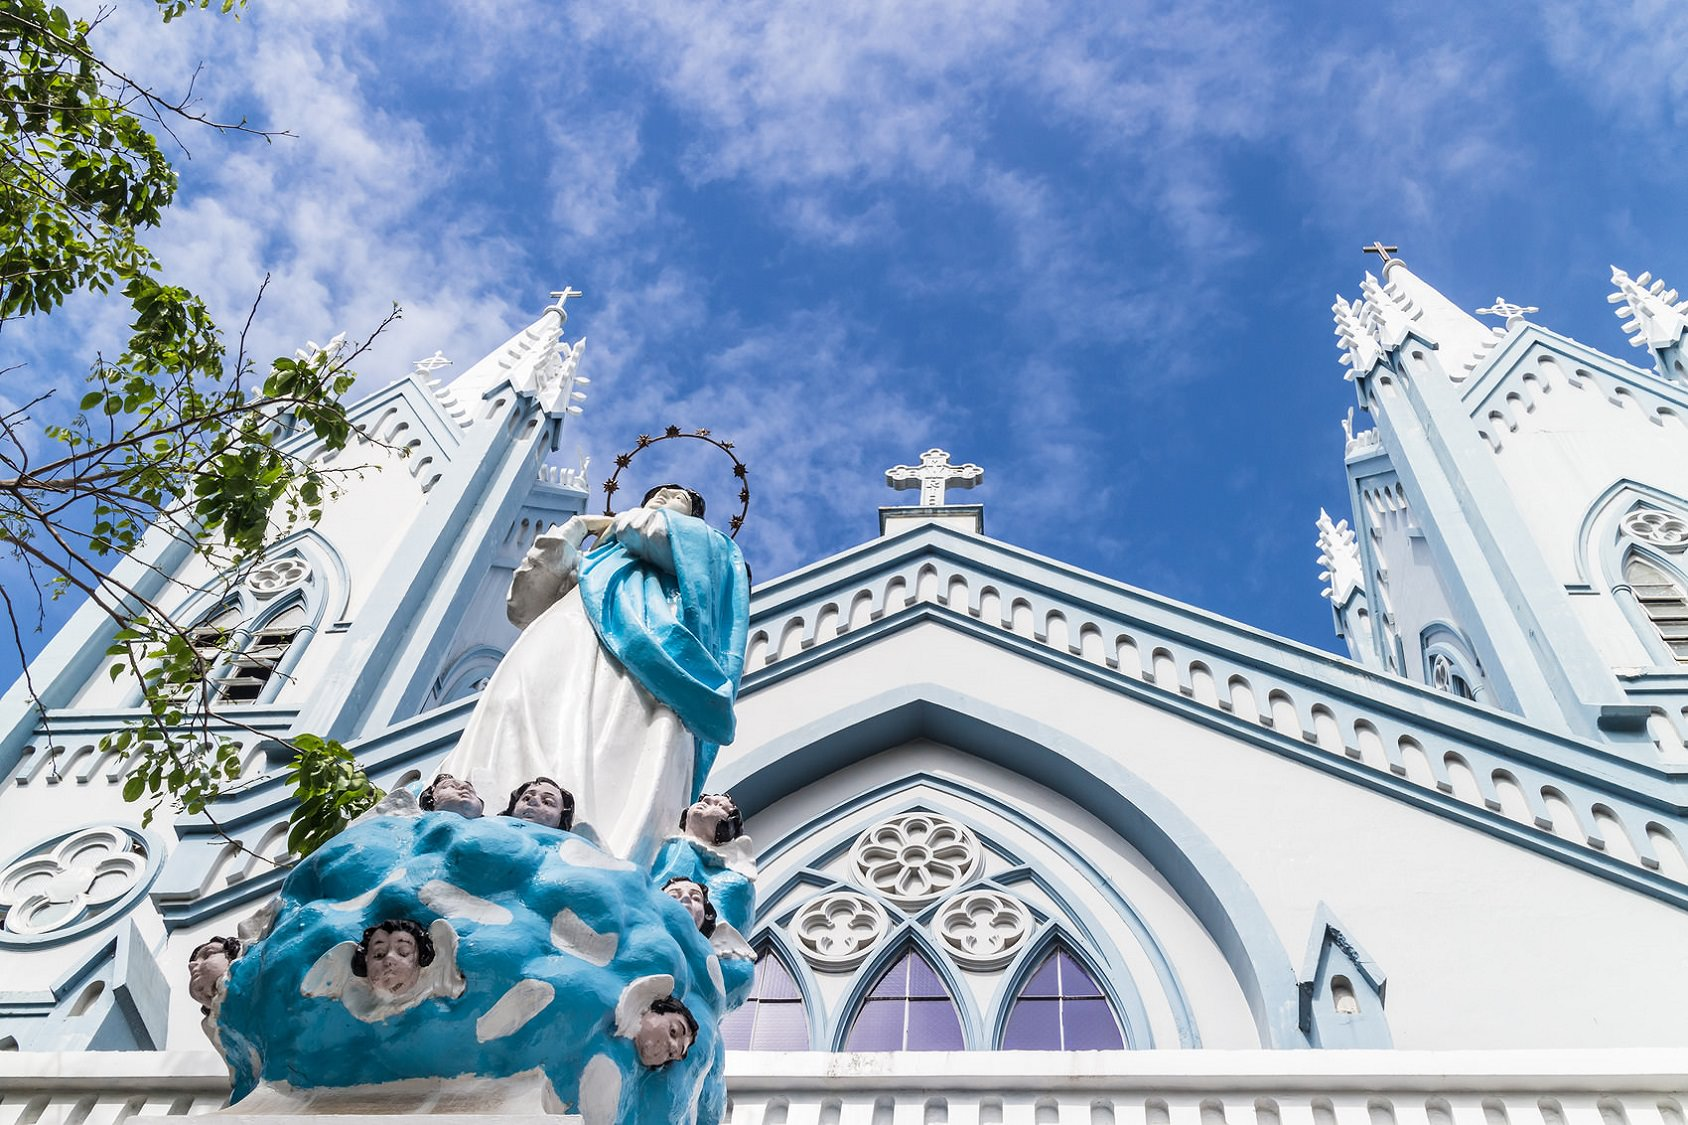 Immaculate Concepcion Cathedral in Puerto Princesa, the main city in the Palawan island of the Philippines. This is a heritage from Spanish colonialism.